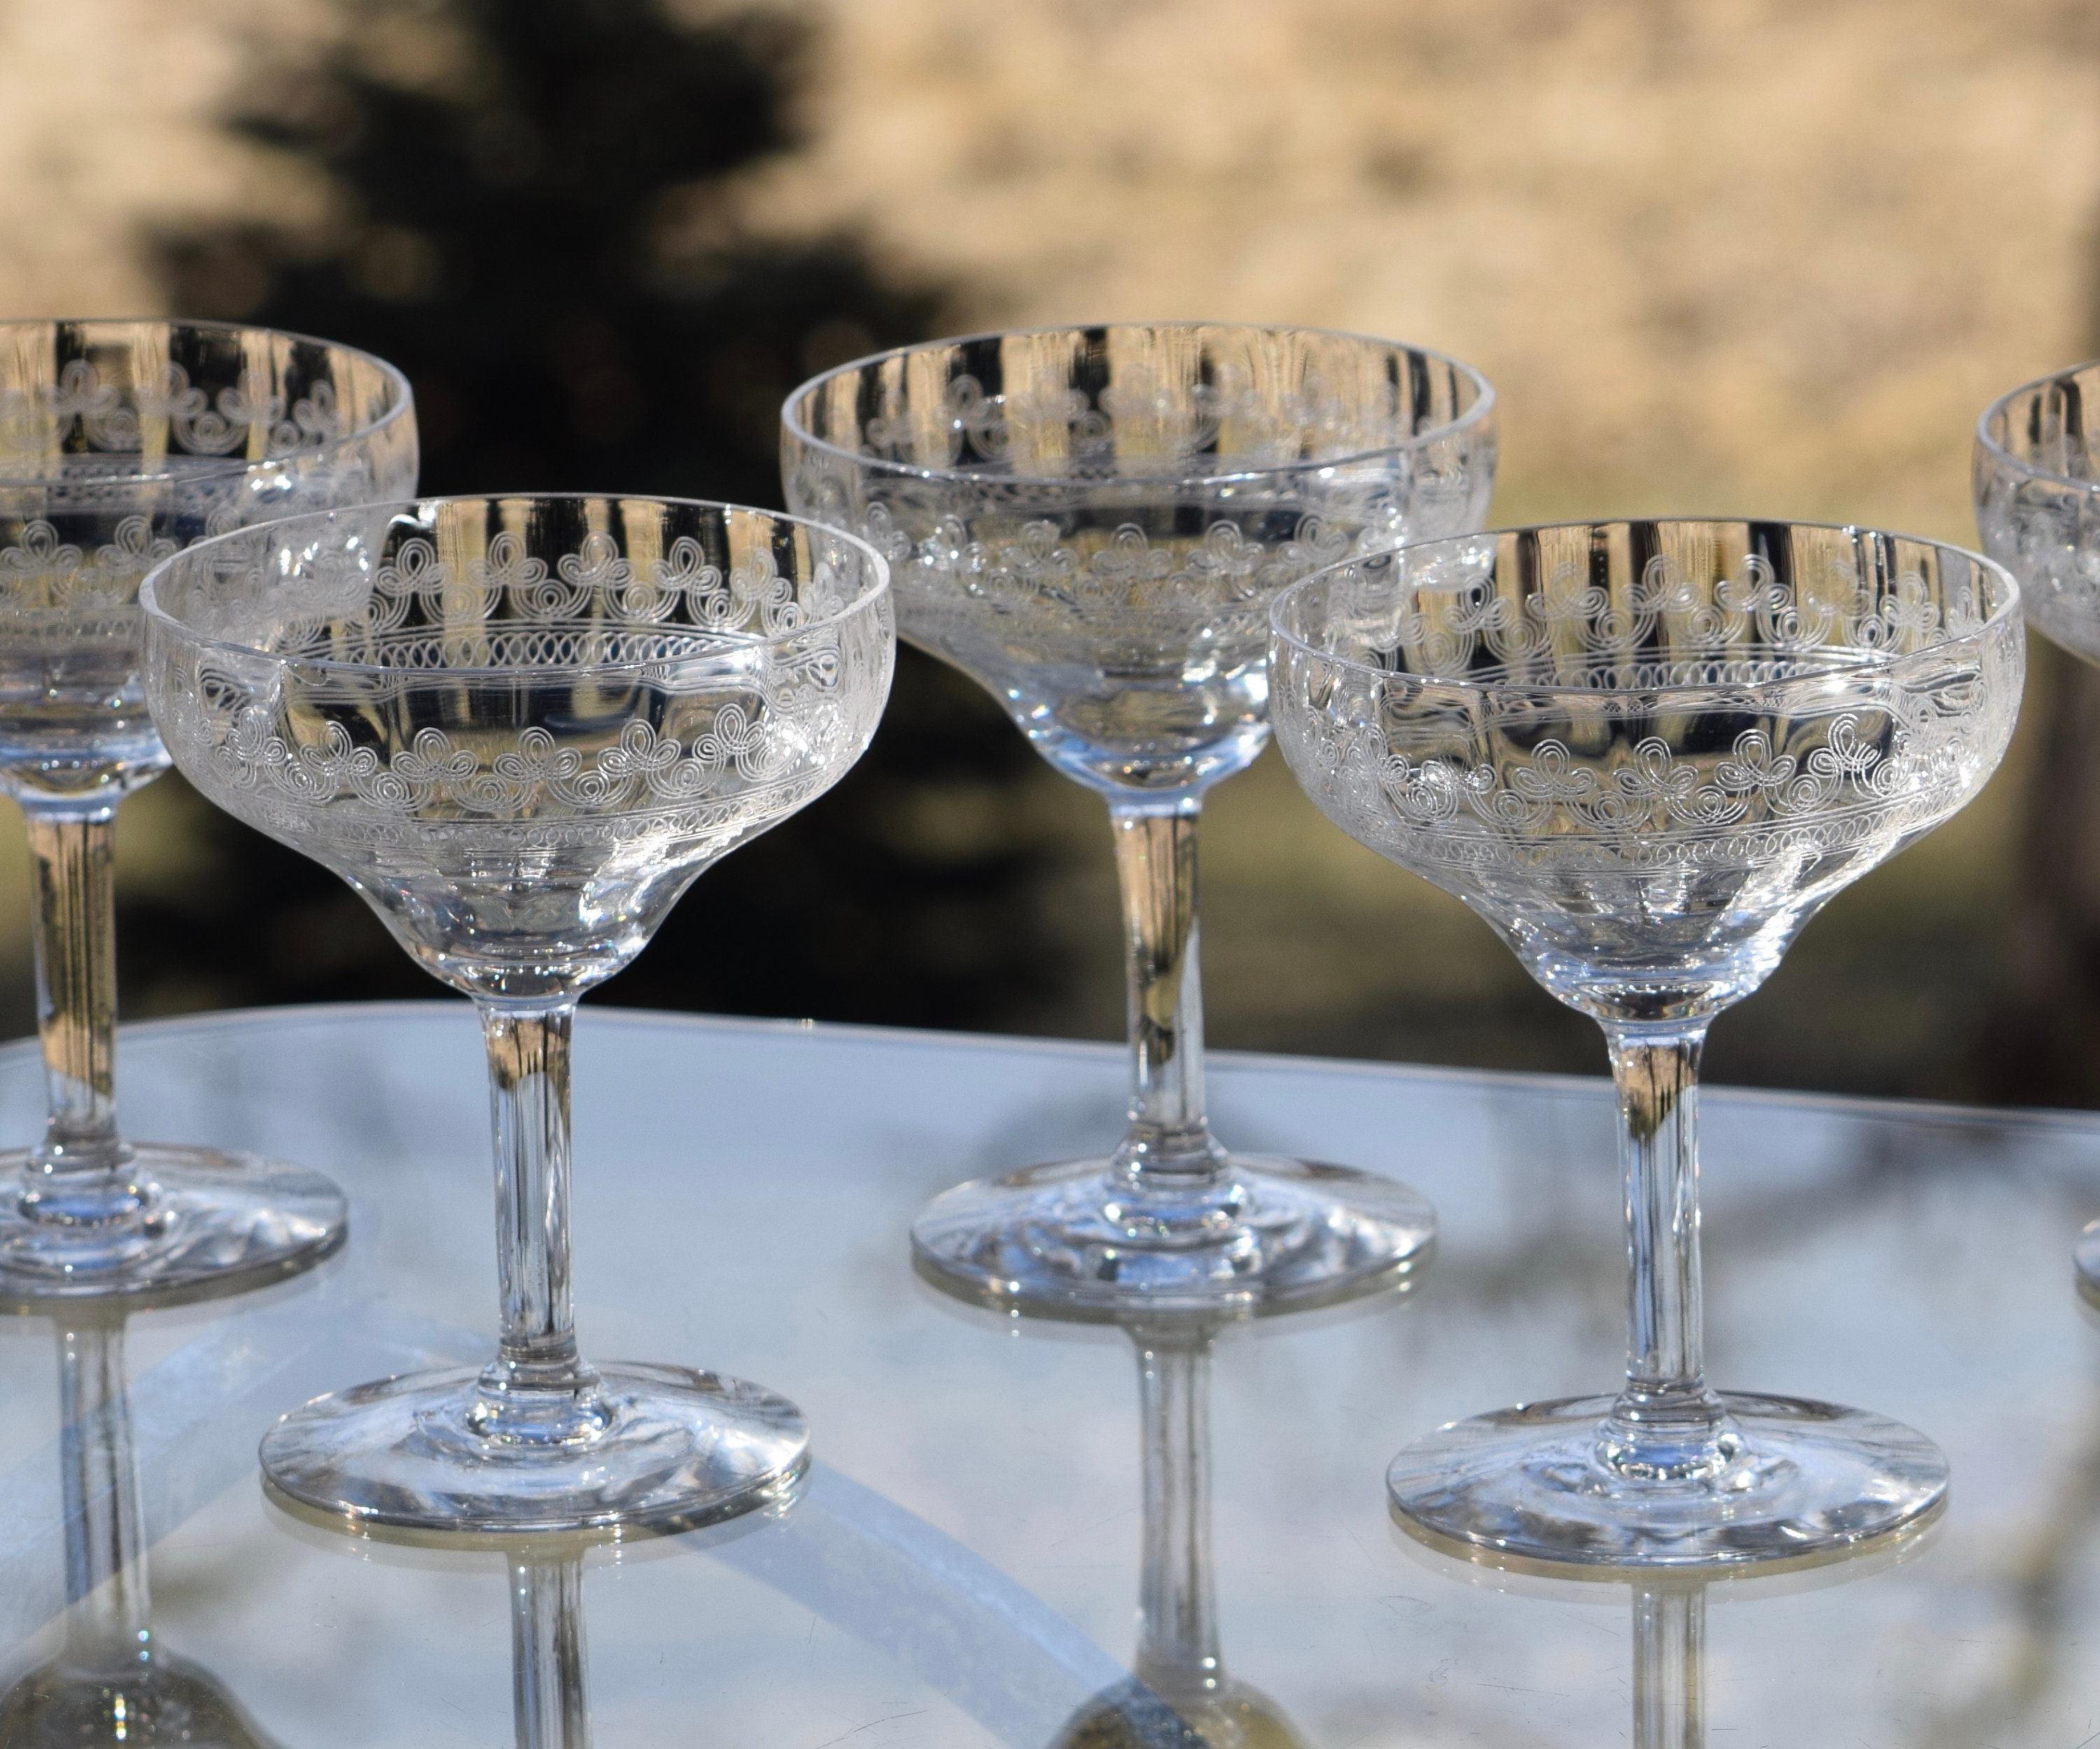 Vintage Needle Etched Cocktail Glasses Set Of 6 Circa 1920 S Antique Needle Etched Champagne Coupes Antique Cocktail Coupe Glasses